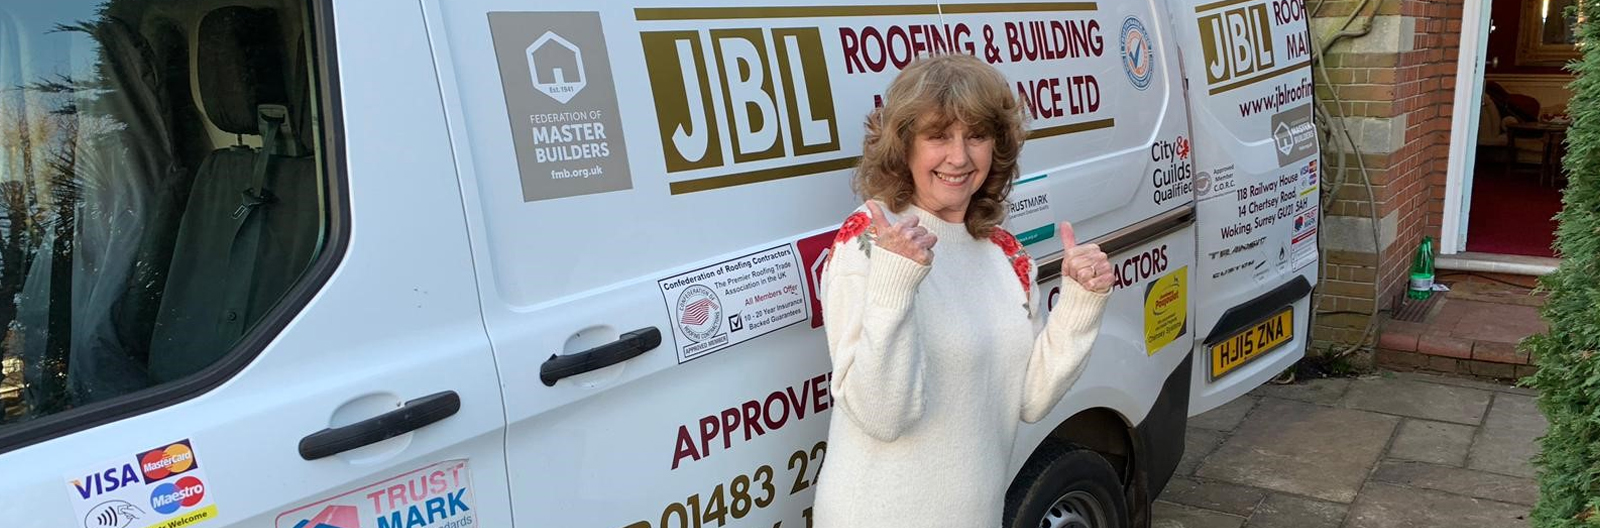 Woking Roofing And Guttering Services Roof Repairs In